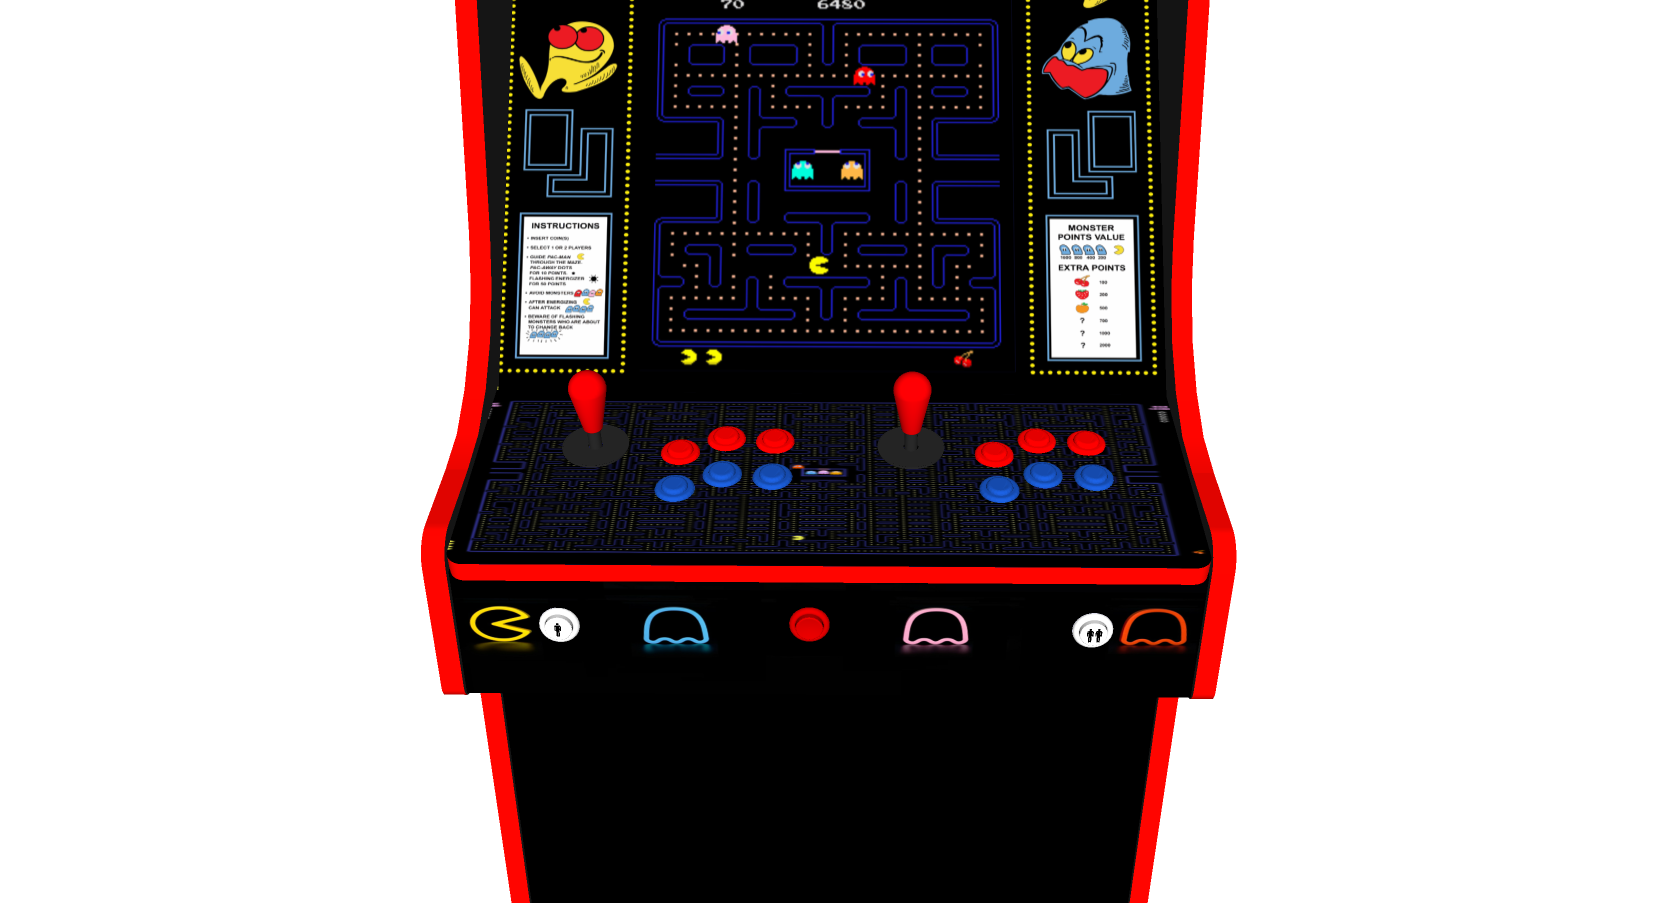 Classic Upright Arcade Machine - PacMan Theme Buttons - V2